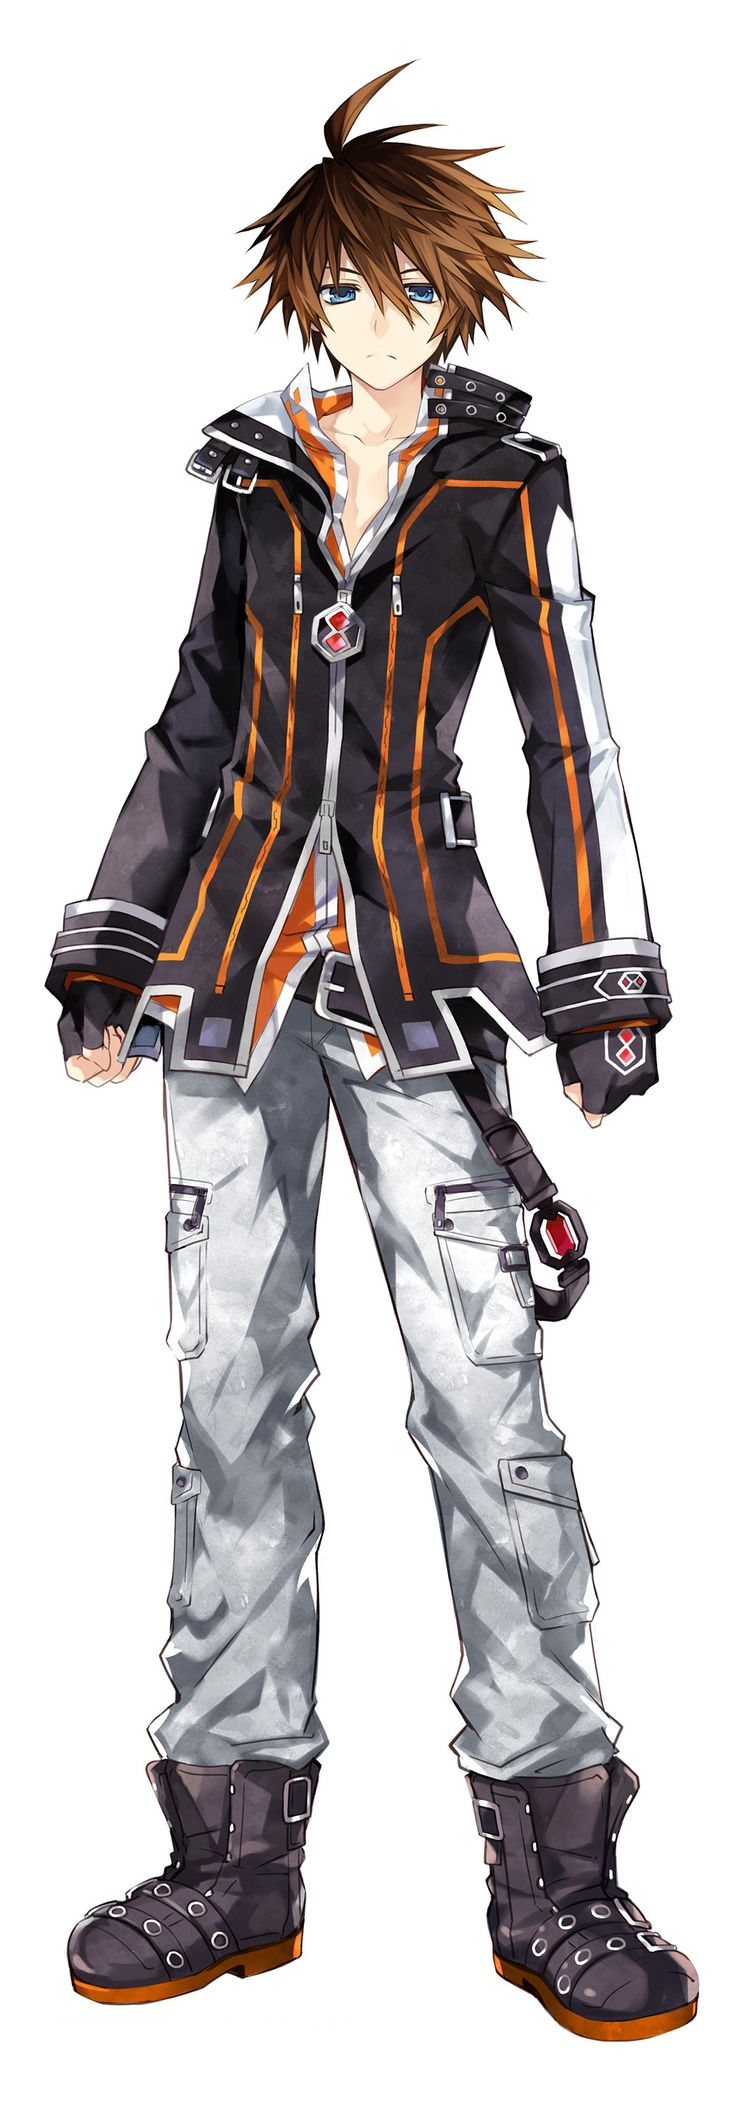 Fang / Fairy Fencer F Advent Dark Force